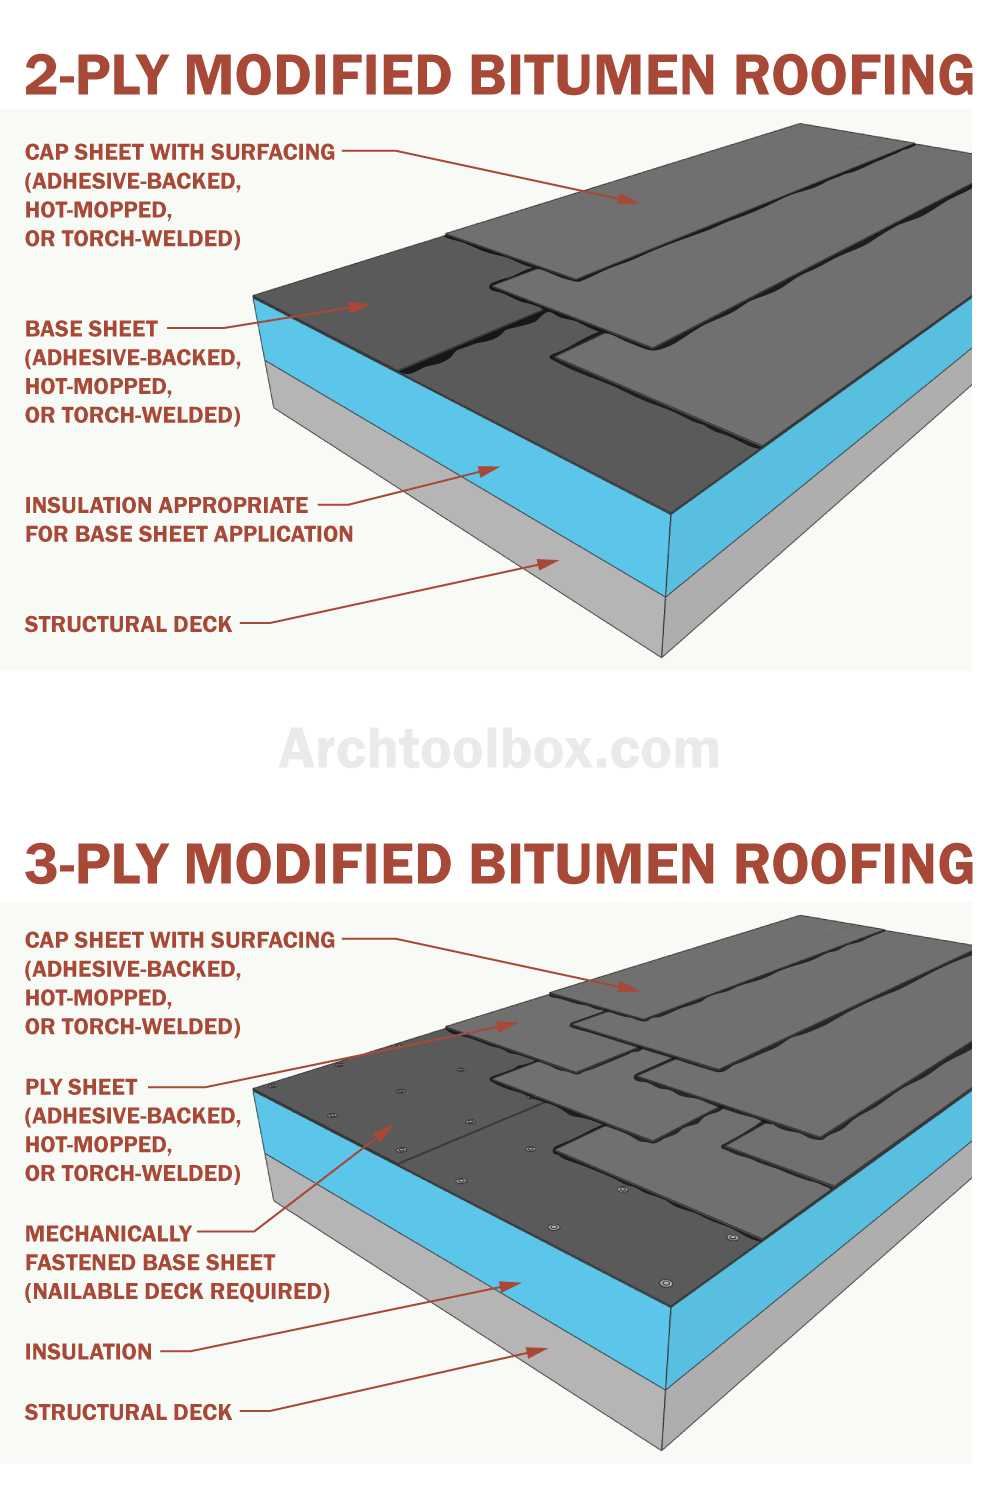 Modified Bitumen Roofing Membranes In 2020 Residential Flat Roof Modified Bitumen Roofing Flat Roof